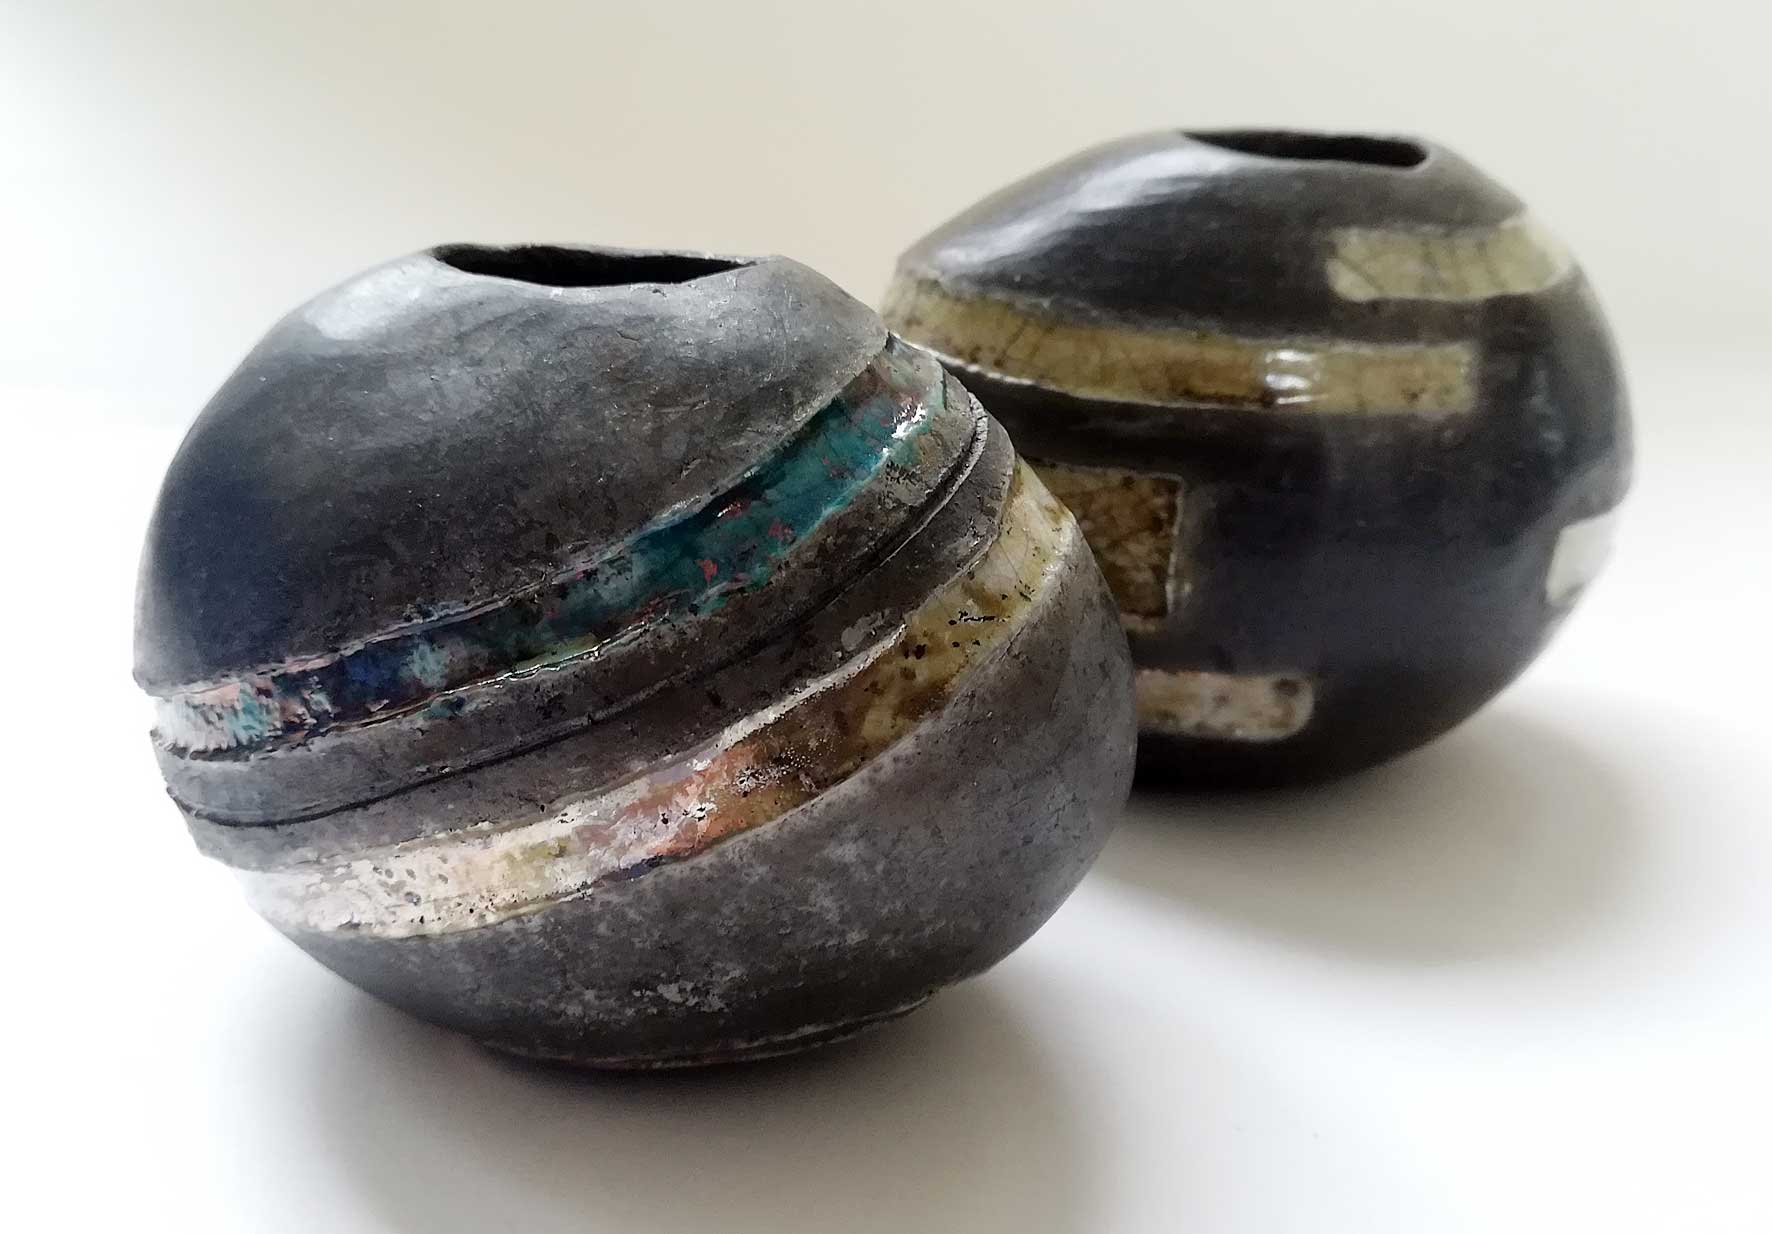 Egg vase silver, turquoise and black